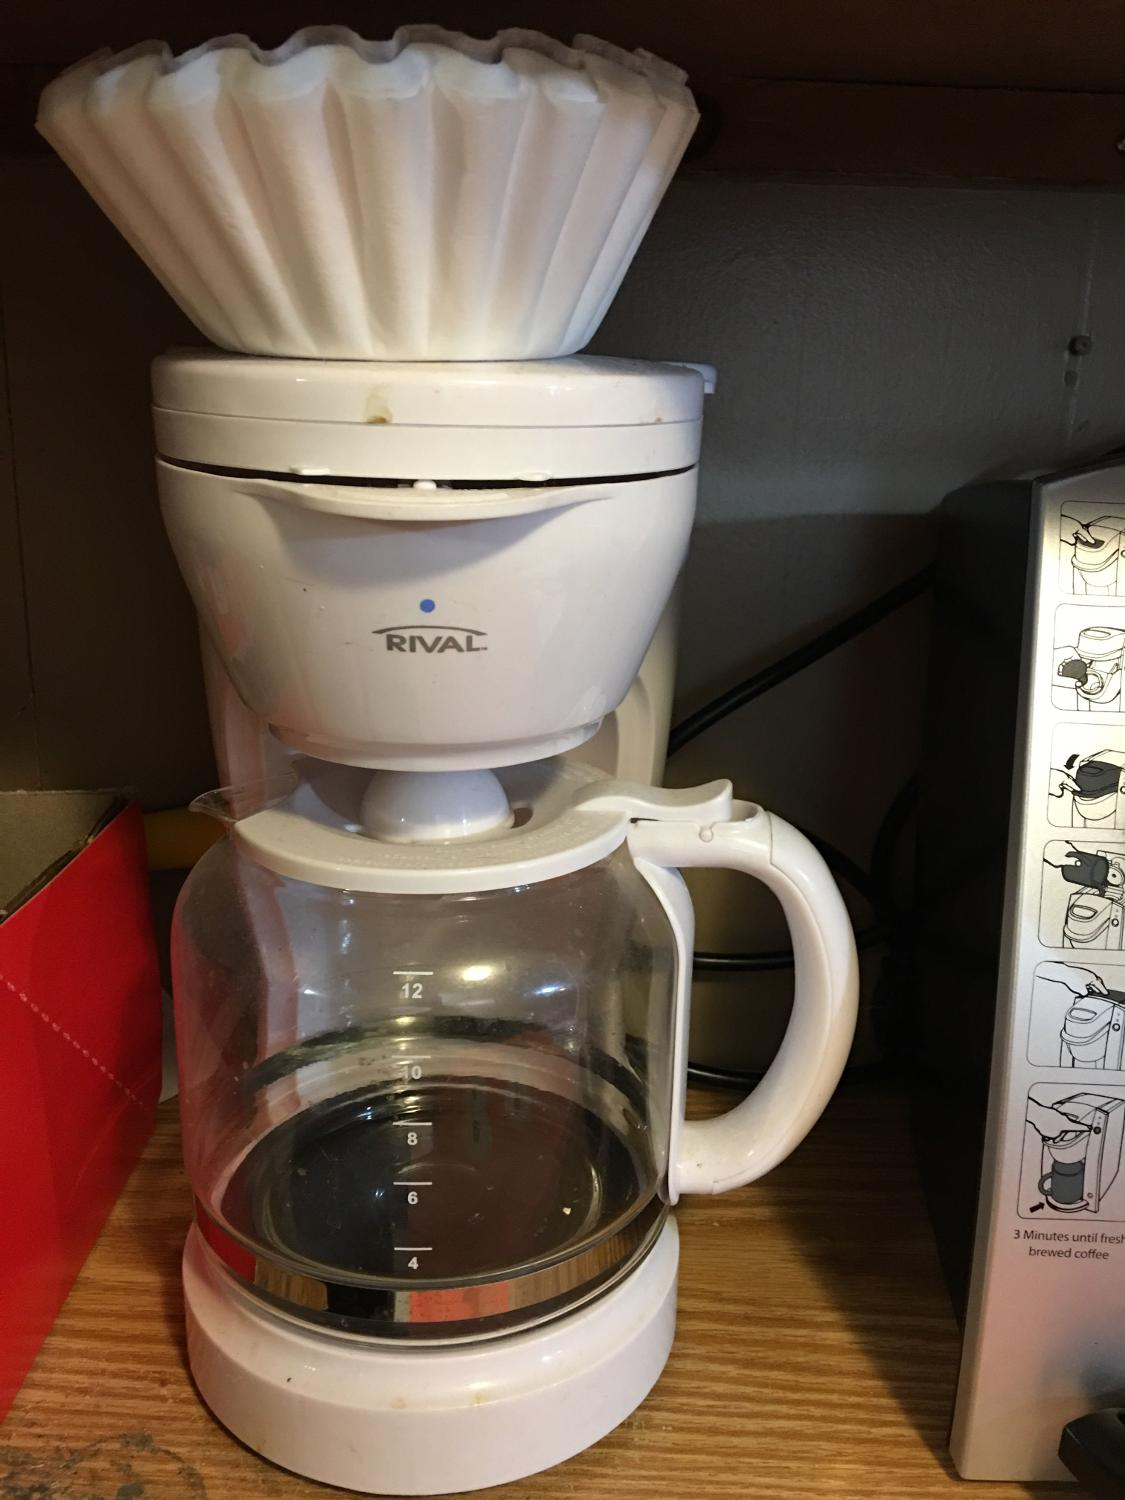 Best Rival Coffee Maker For Sale In Minot North Dakota